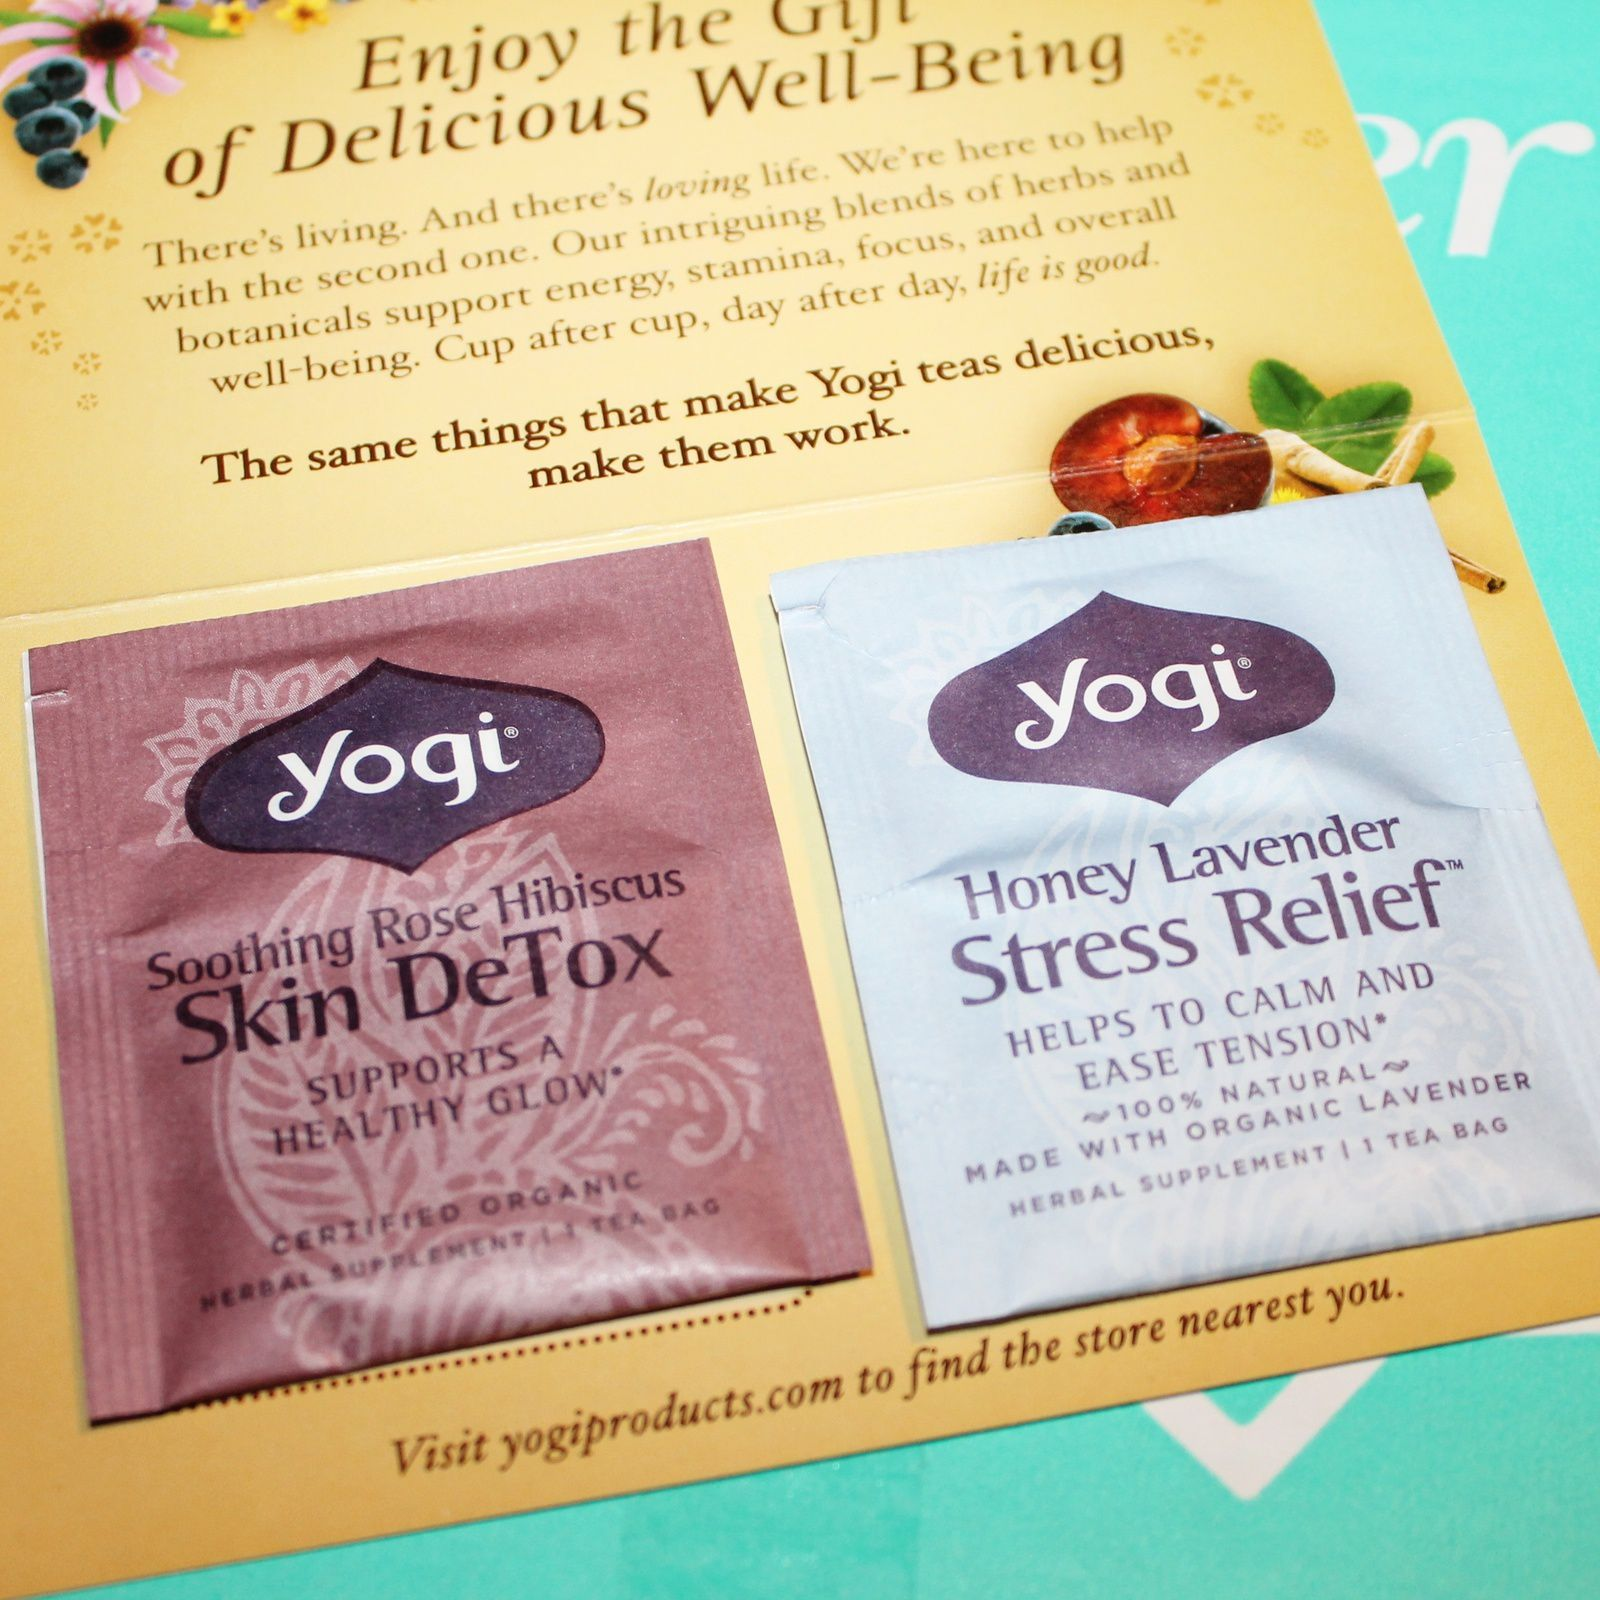 Yogi Tea Soothing Rose Hibiscus Skin DeTox& Honey Lavender Stress Relief